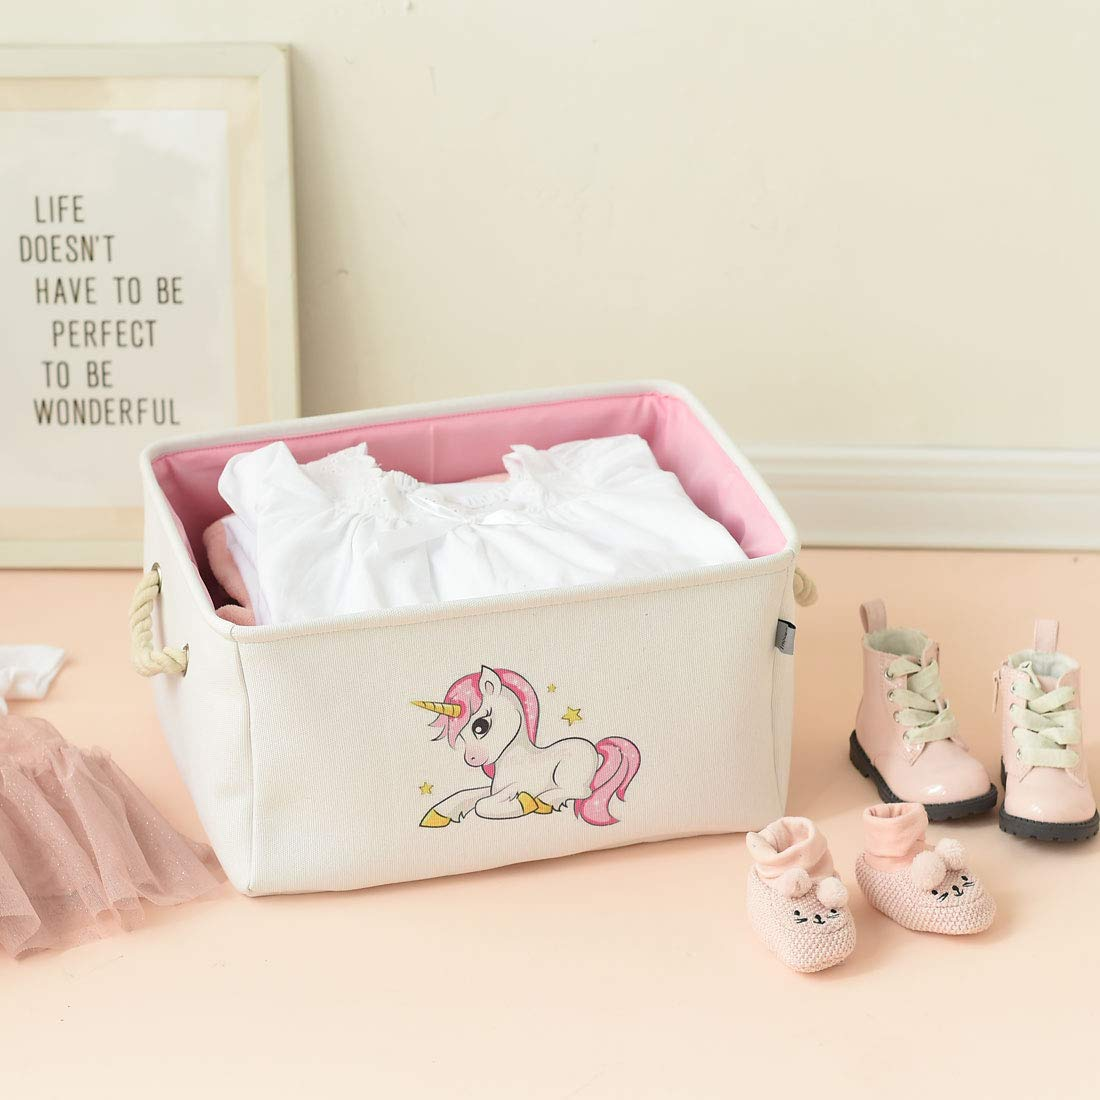 INough Floral Storage Bins,Collapsible Storage Basket Toys Clothes Crafts Organizer Fabric Laundry Baskets Storage Bin with Handle for Underbed Closet Cube Small, Floral